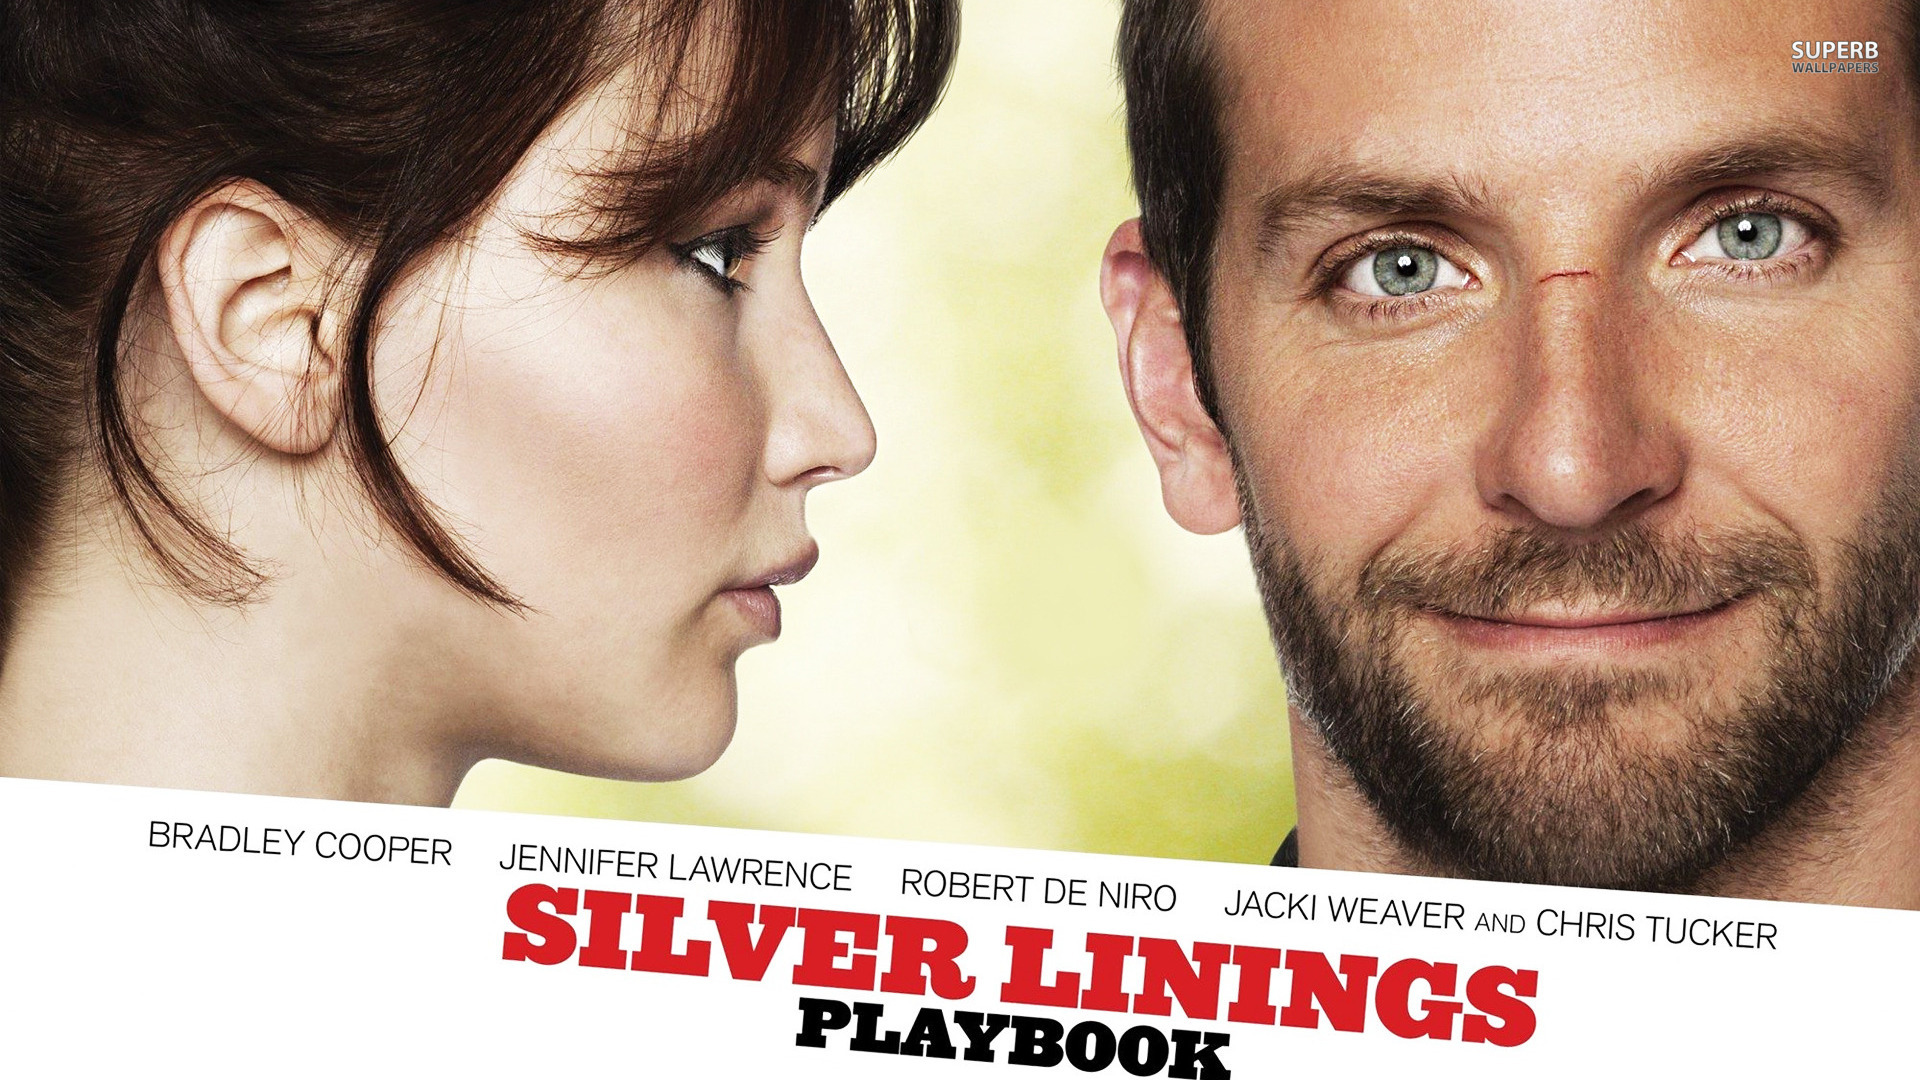 https://i1.wp.com/www.norwalklib.org/Images/FormCenter/Items/pat-and-tiffany-silver-linings-playbook-17389-1920x1080%5B1%5D.jpg